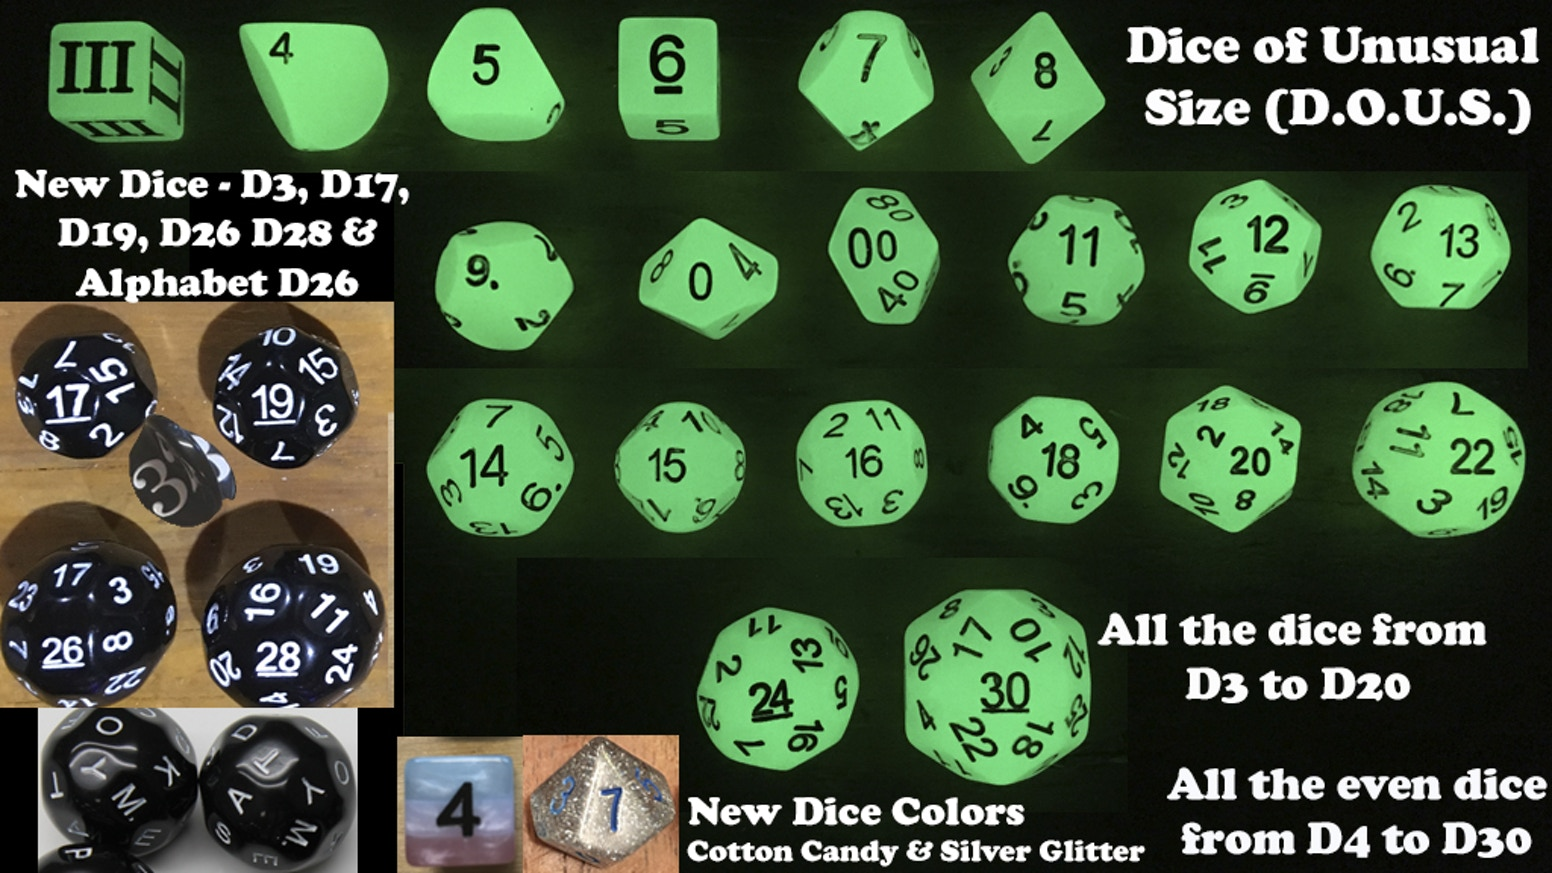 New D17, D19, D26 & D28 dice.  Full RPG & DCC dice chain sets.  All the sides from D3 to D20.  All the evens from D4 to D30.